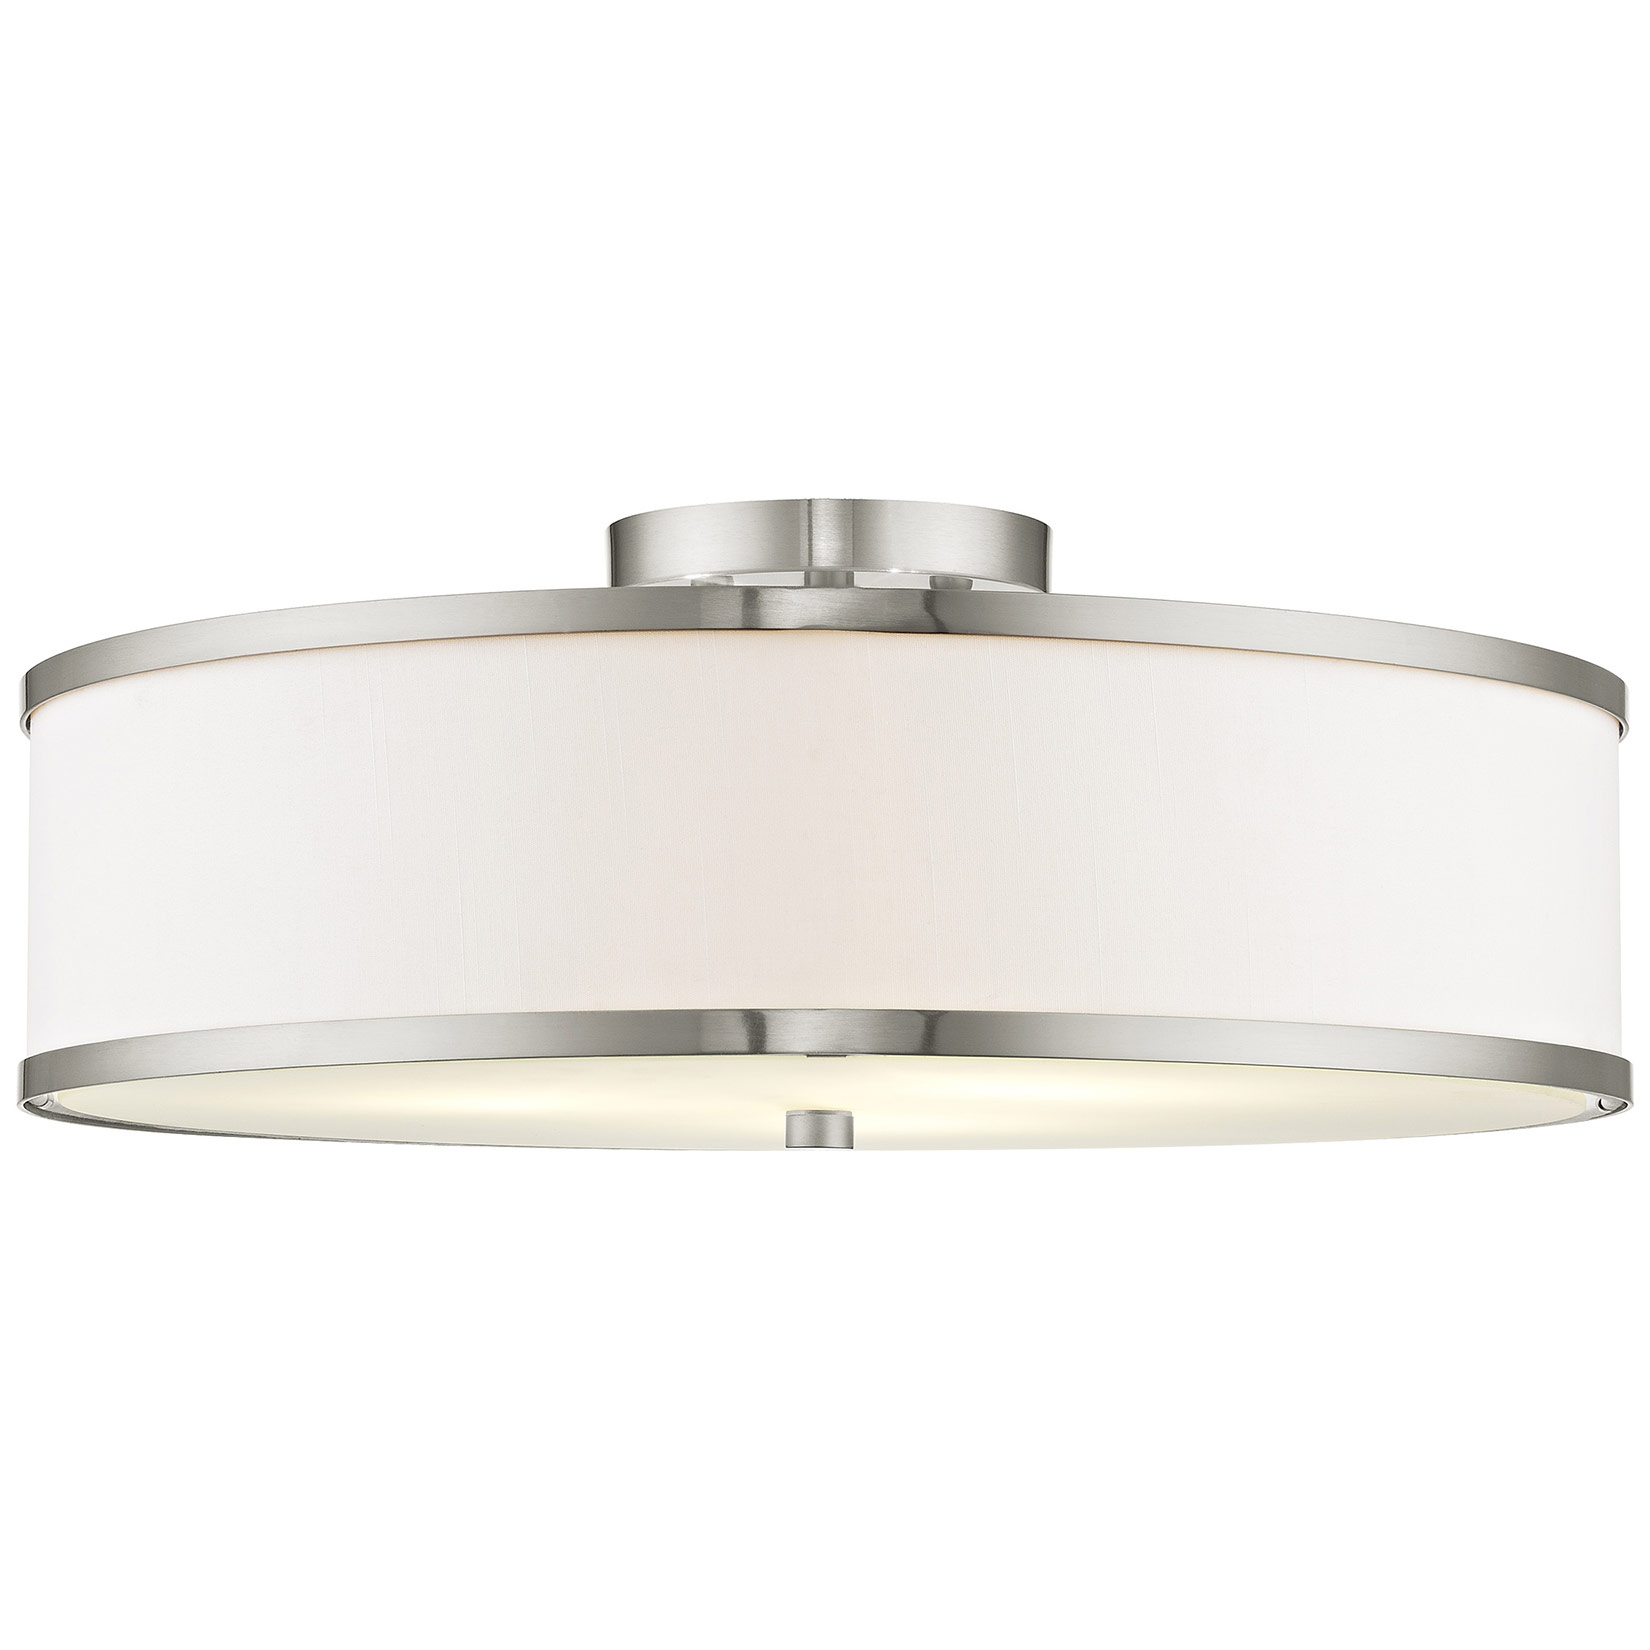 Park Ridge White Semi Flush Ceiling By Livex Lighting